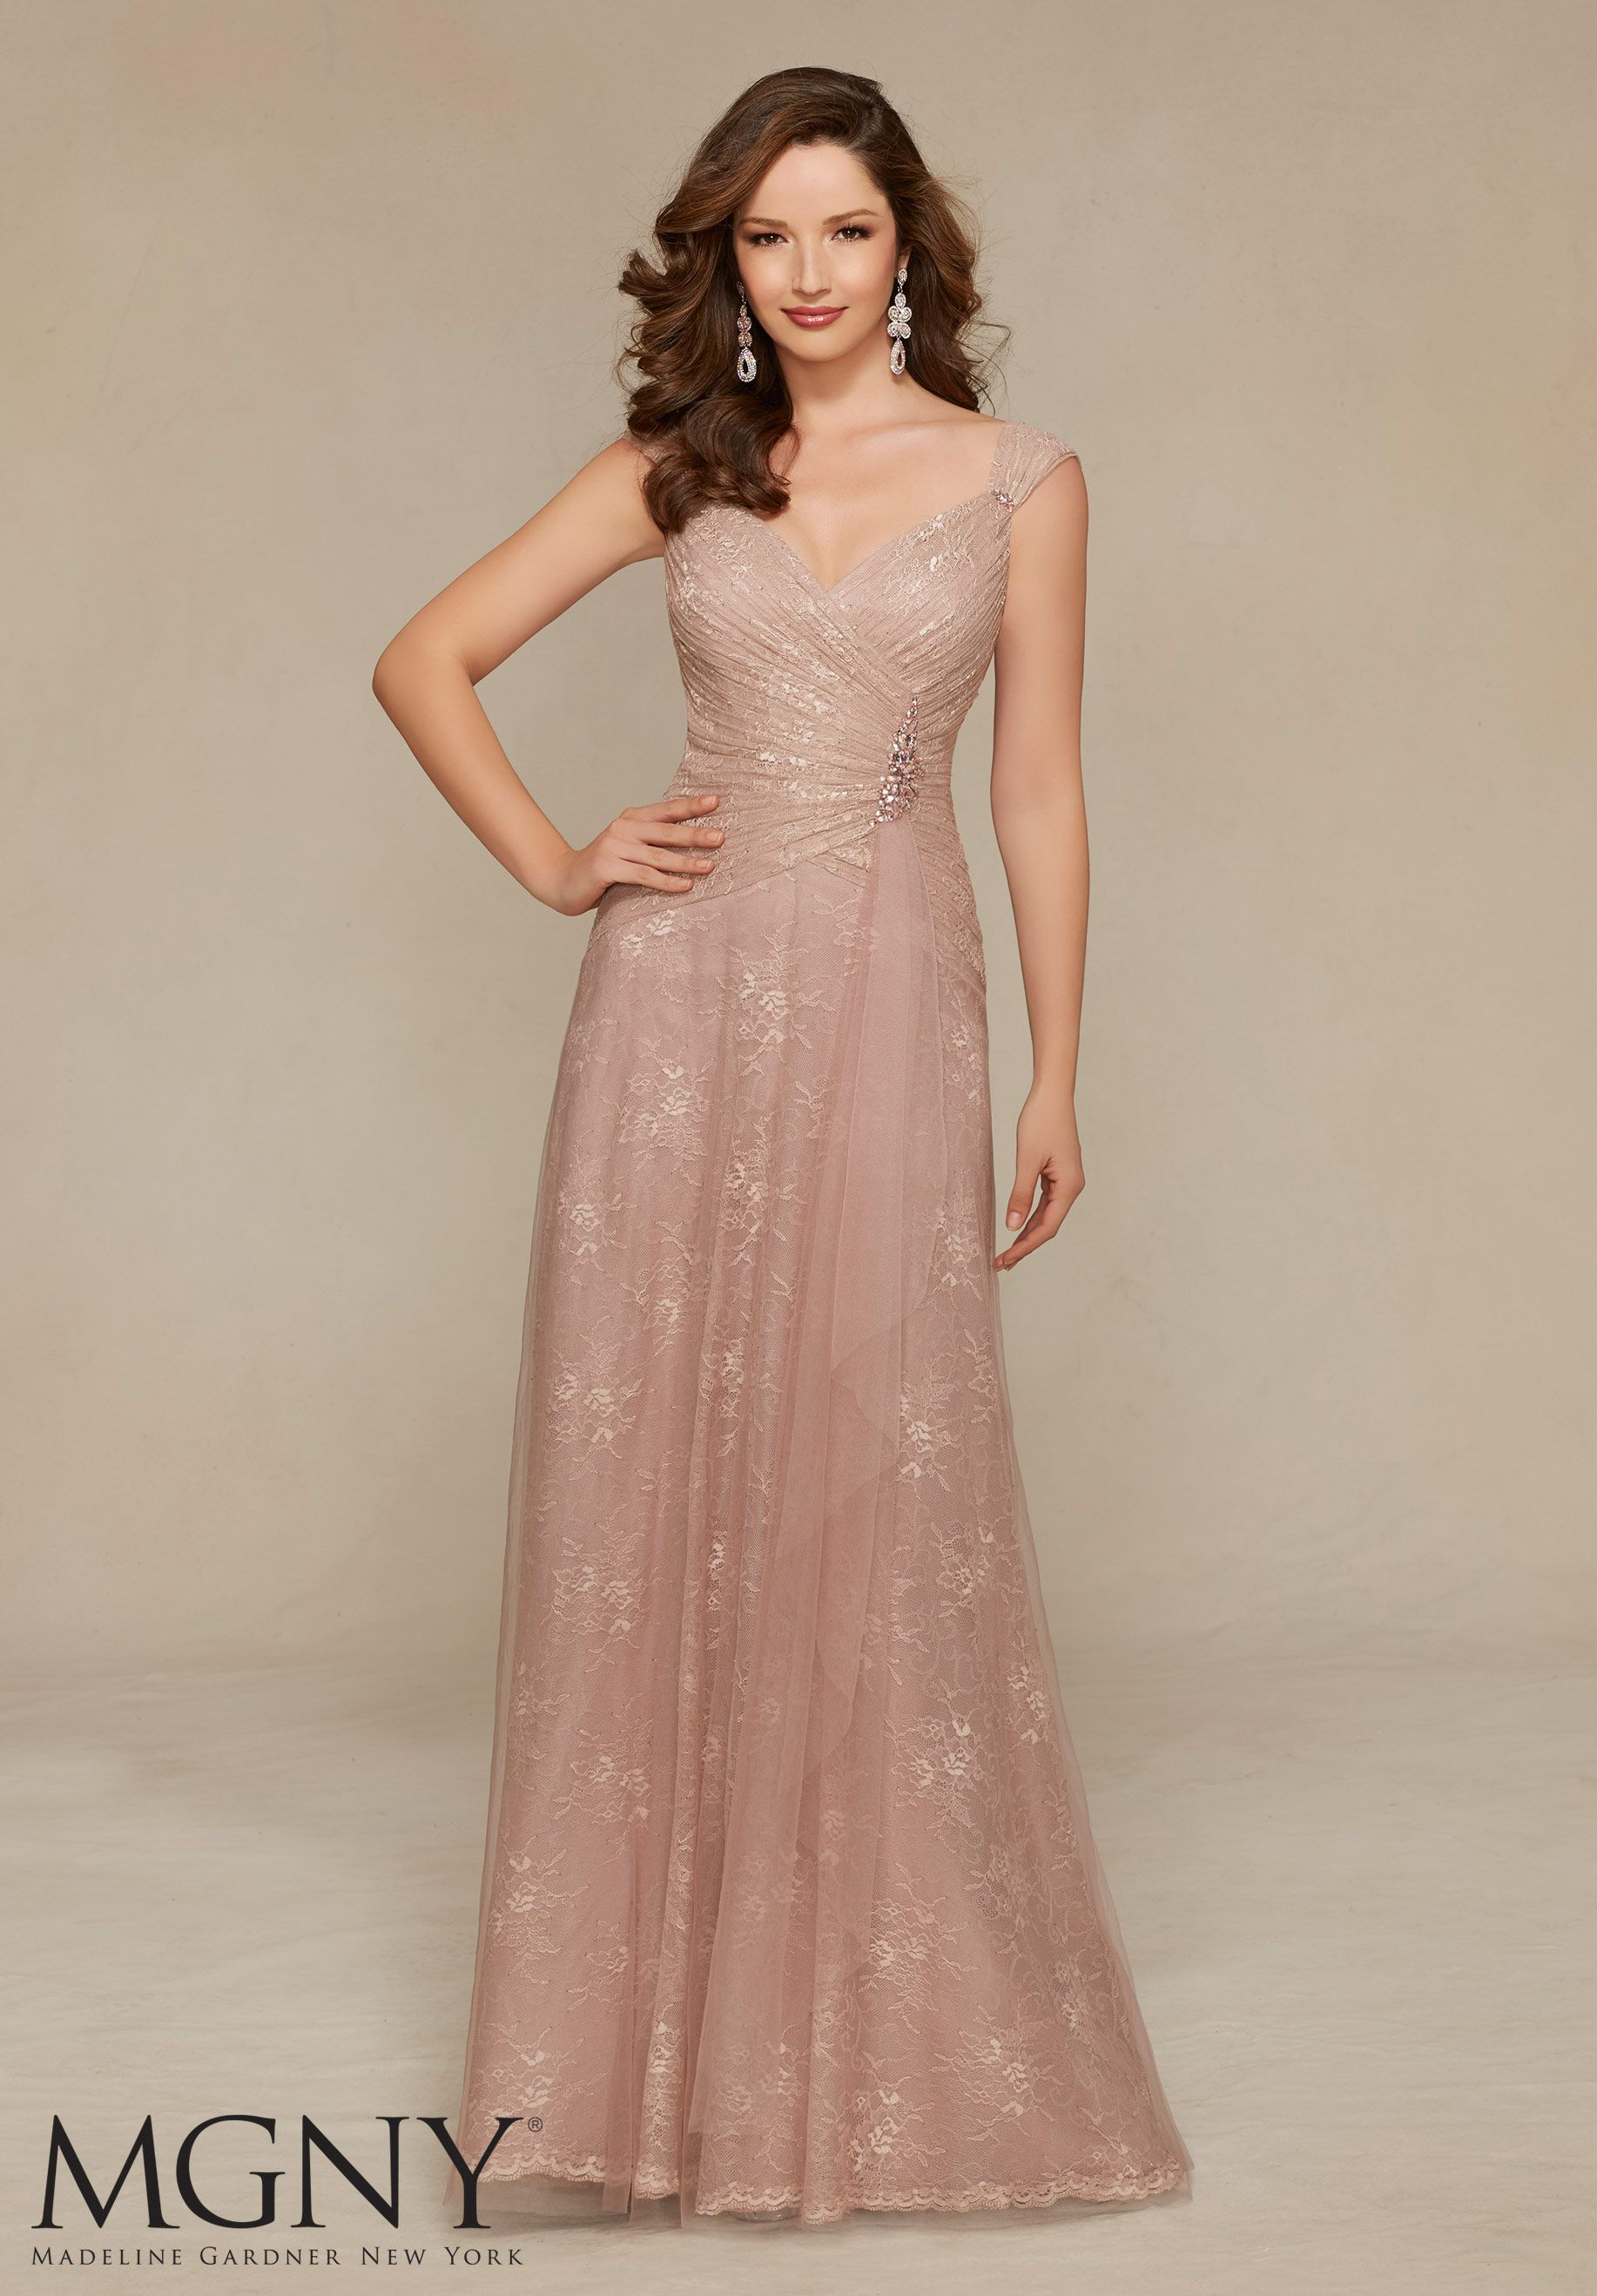 Evening Gowns And Mother Of The Bride Dresses By Mgny